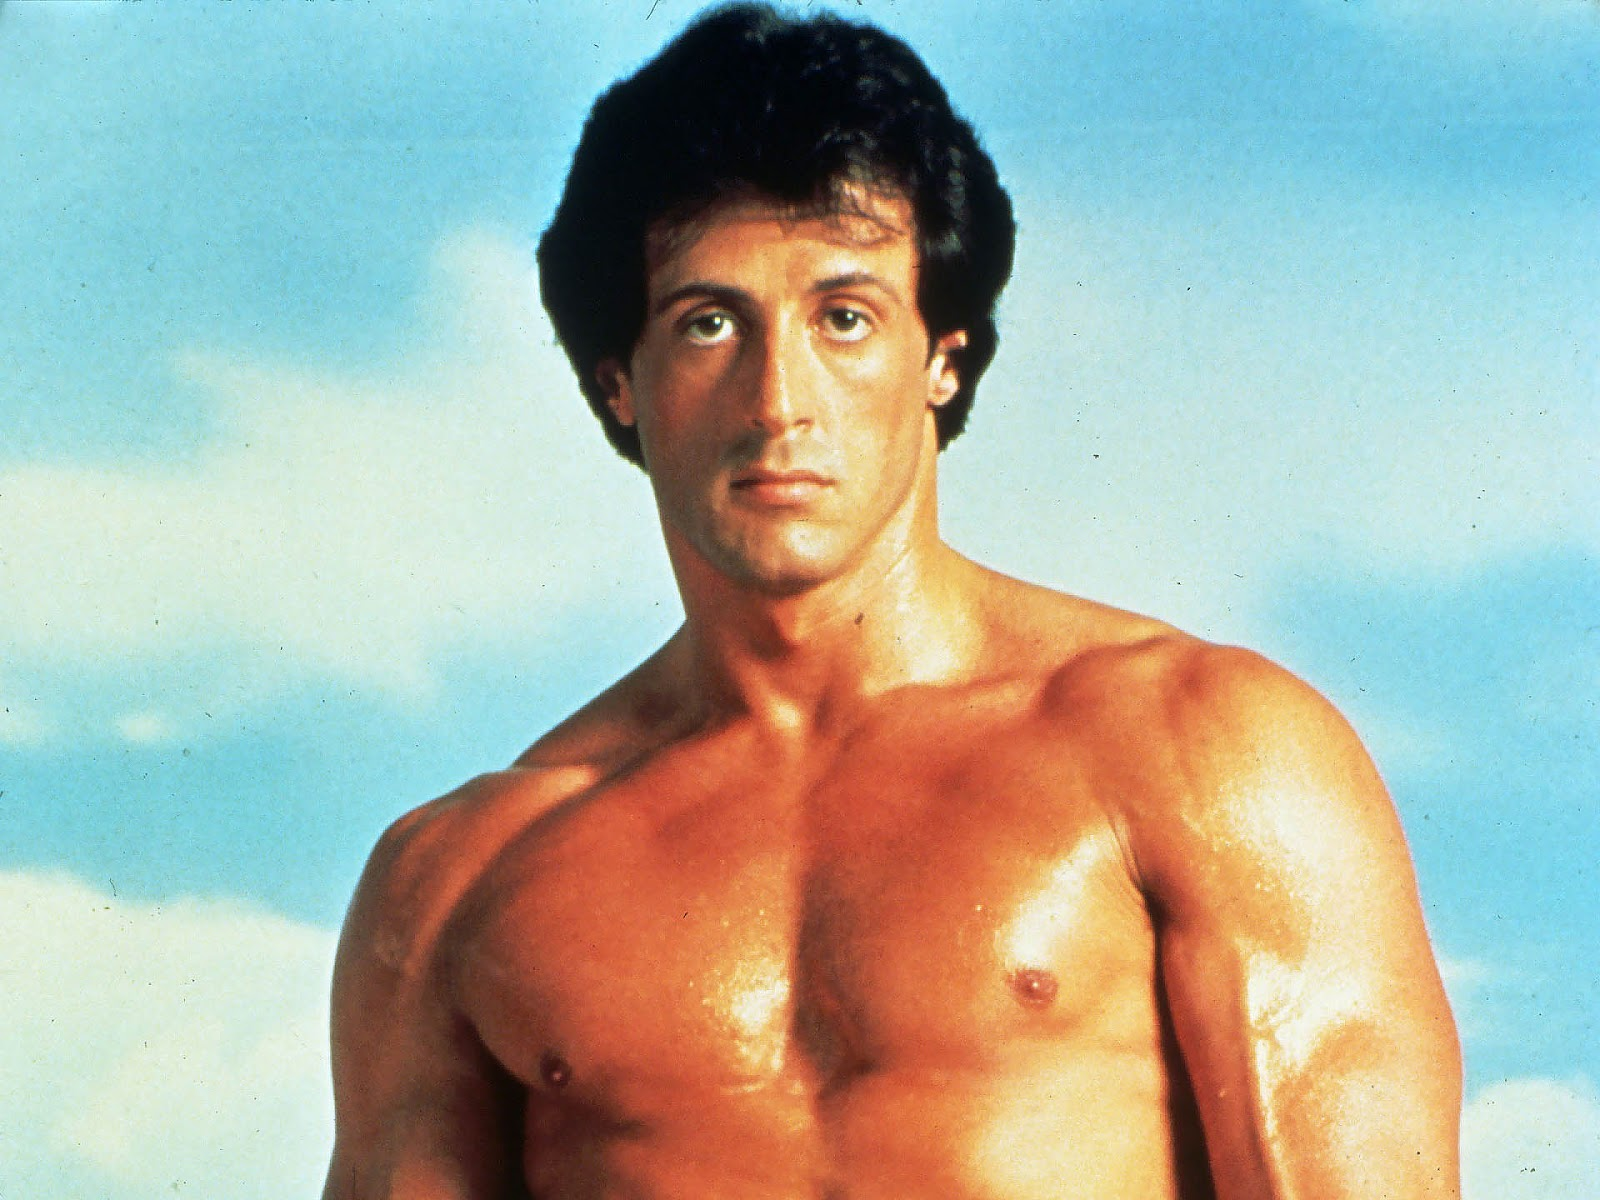 Arsenal Live Wallpaper Hd Download Sylvester Stallone Body Wallpapers Gallery